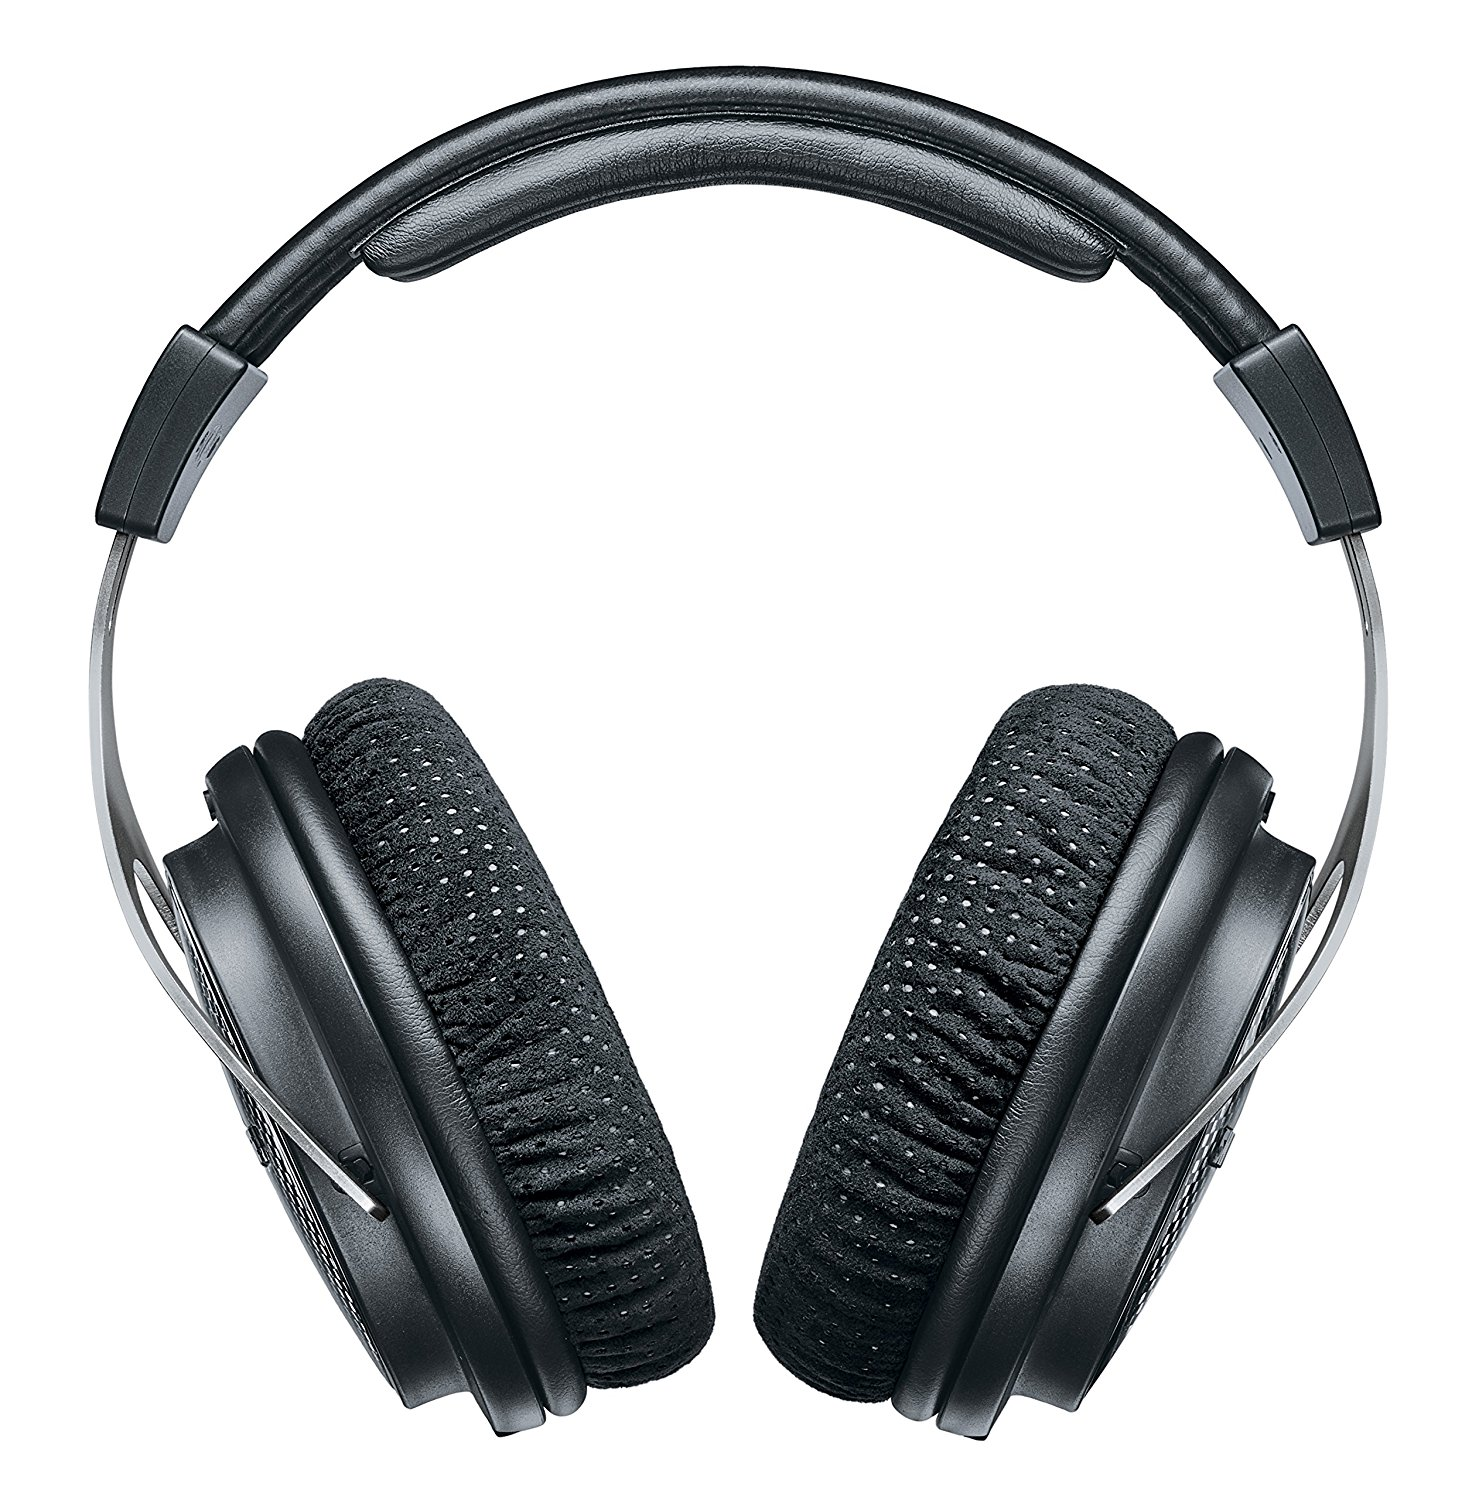 50 Best Gaming Headset Black Friday 2021 & Cyber Monday Deals